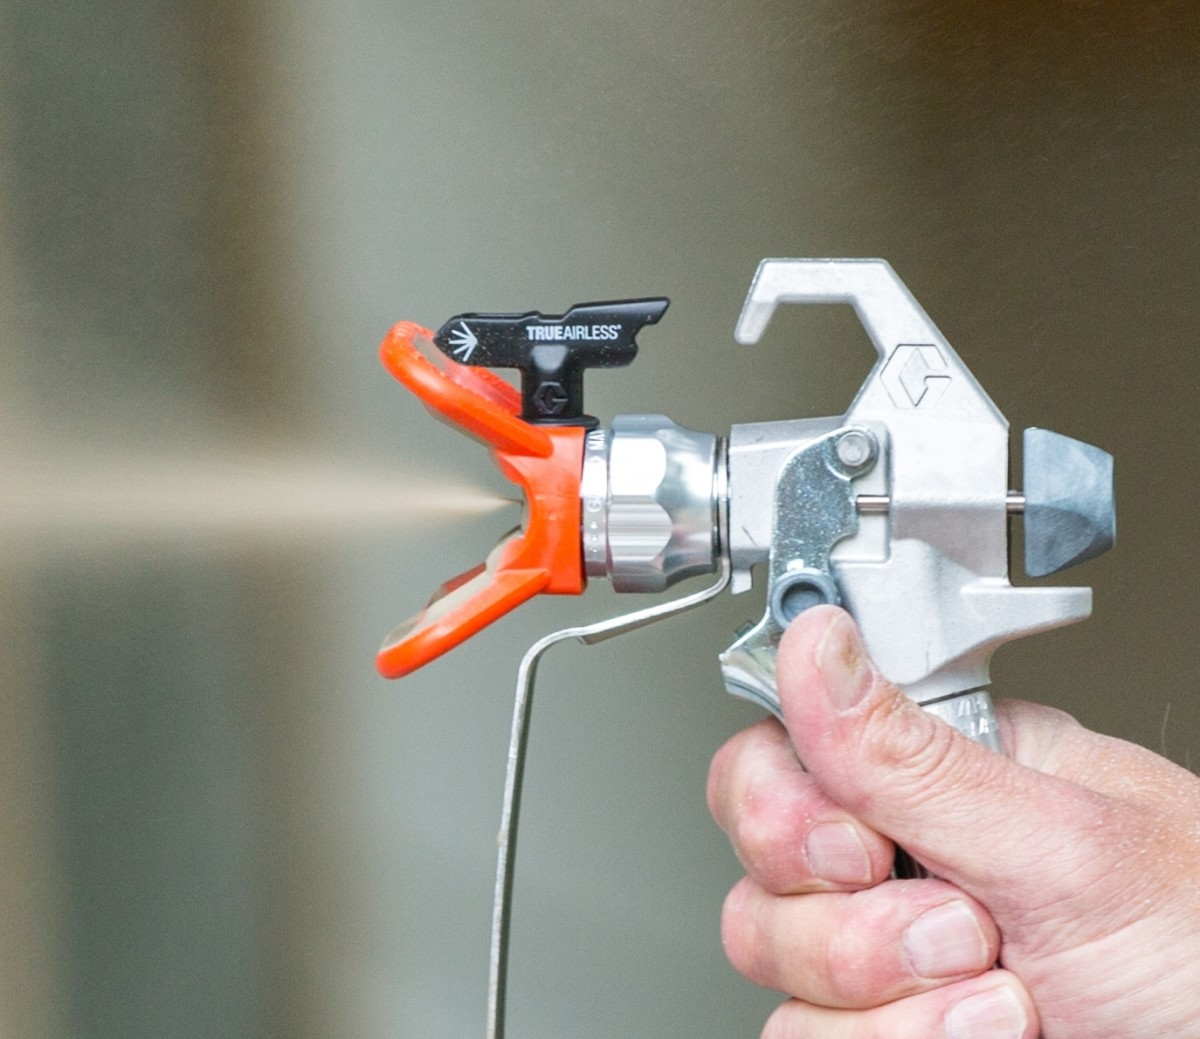 Tips for Cleaning Graco Airless Paint Sprayer Parts